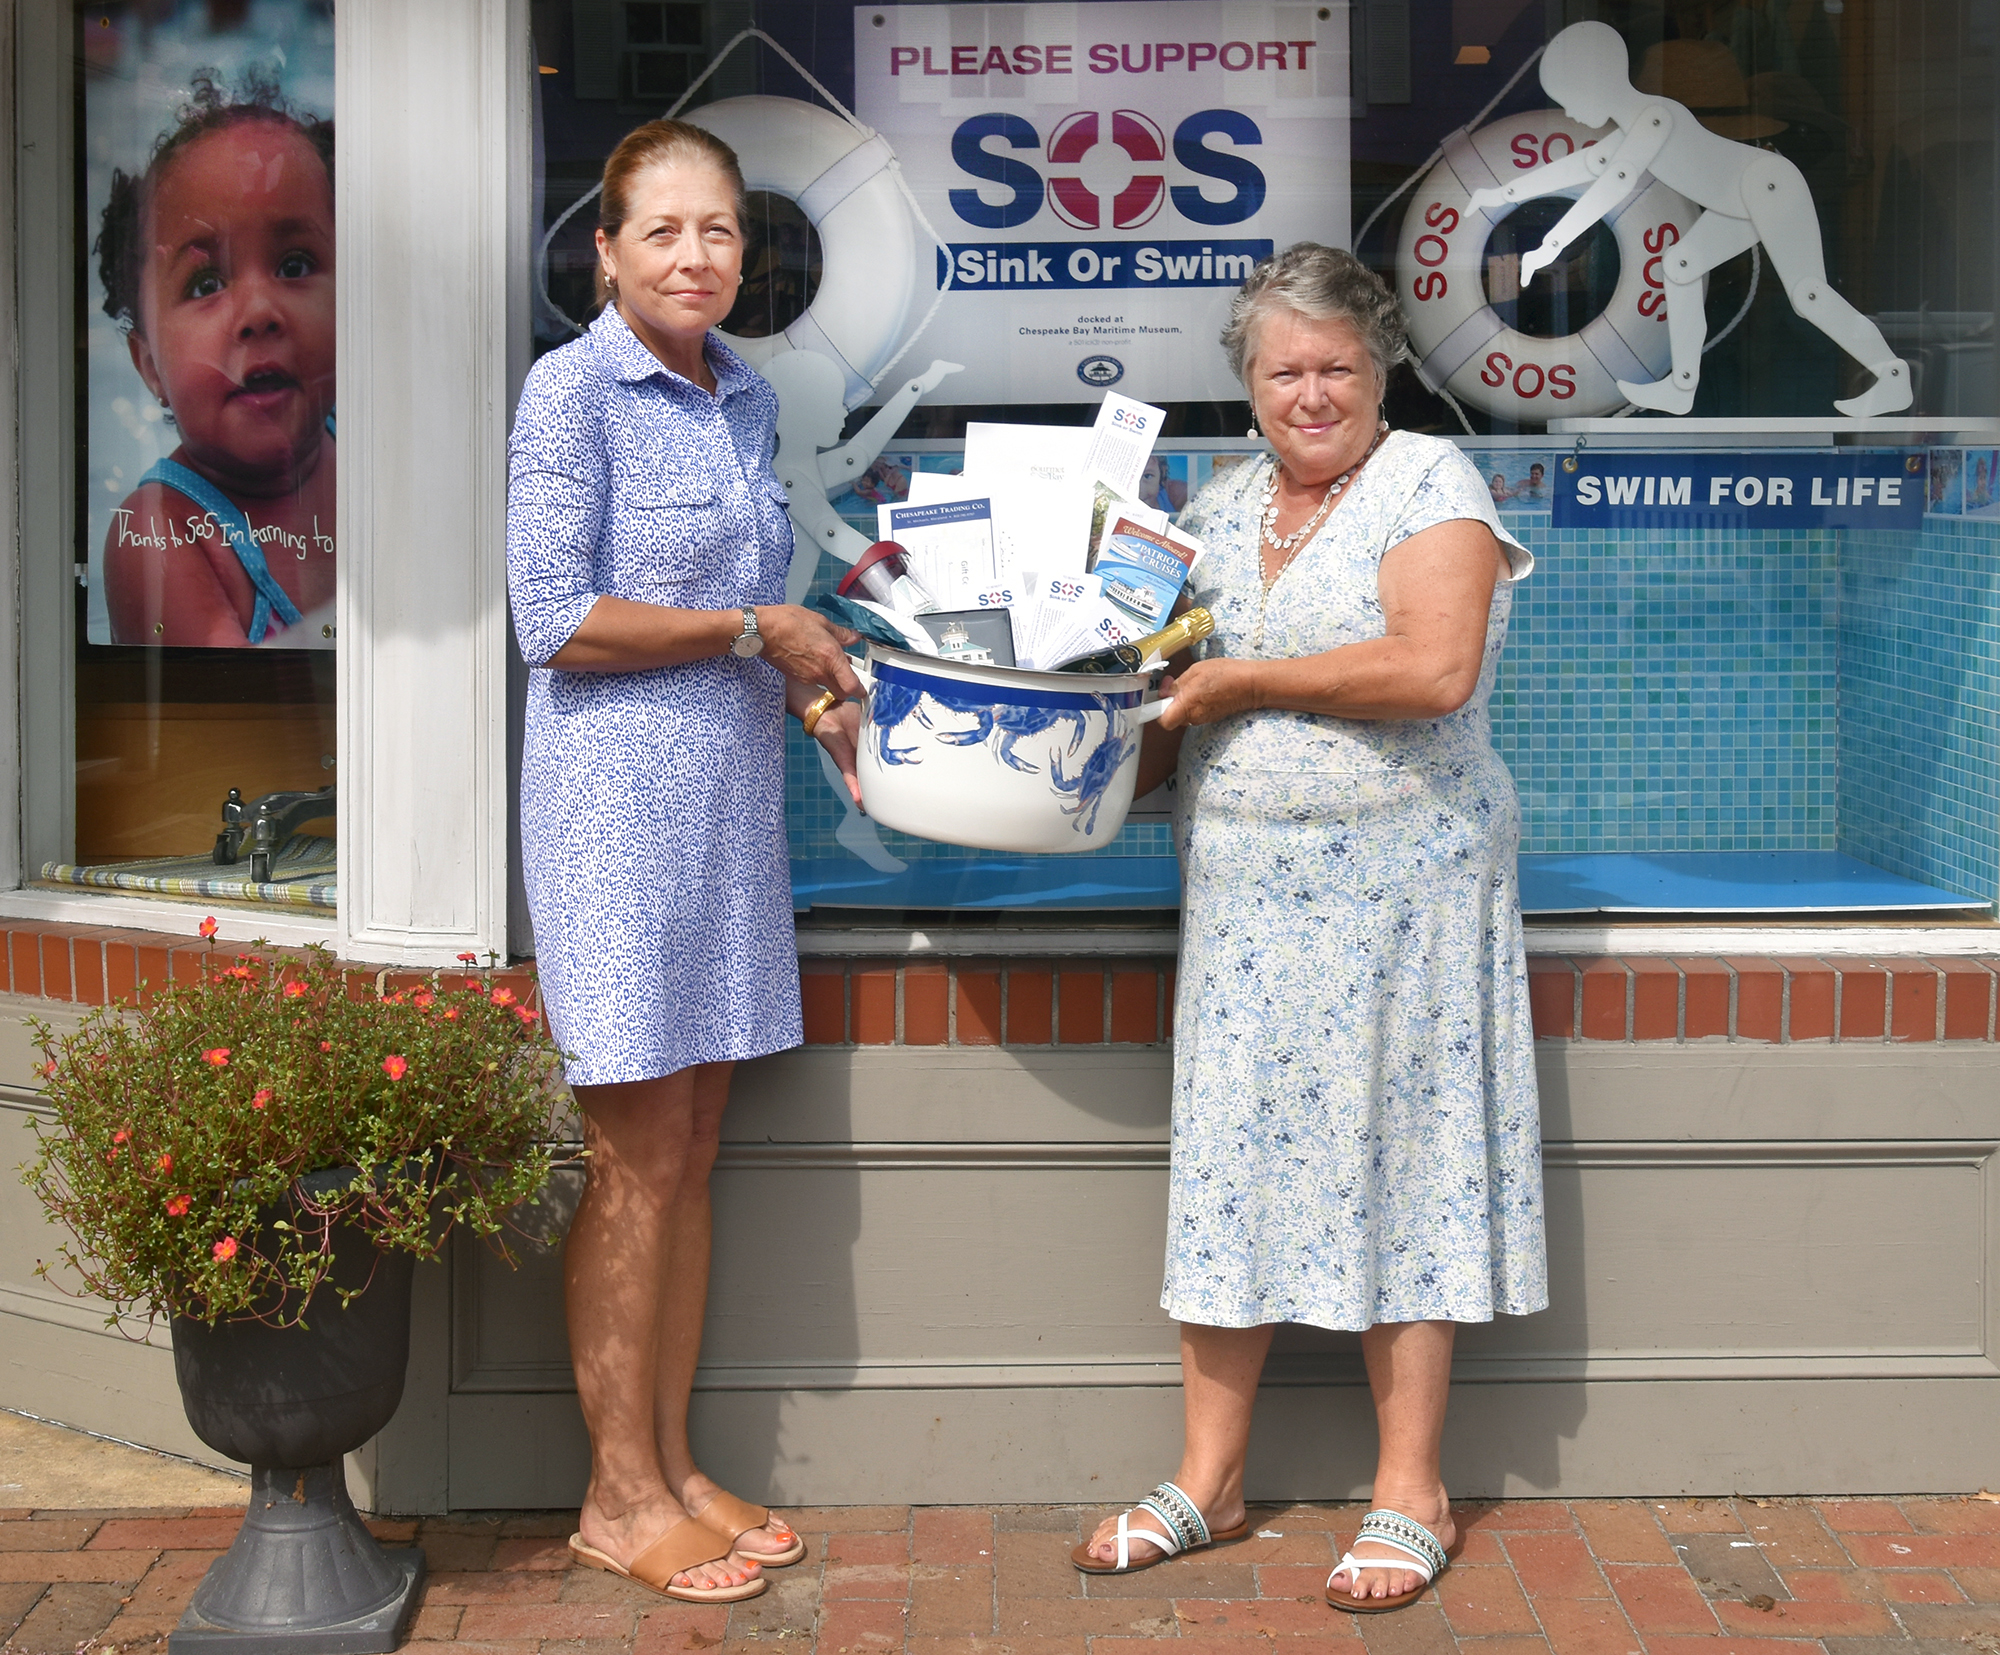 Jo Batters, left, is presented with raffle prizes by Chesapeake Trading Company owner Lynda Boettner. Chesapeake Trading Company hosted the SOS Sink or Swim raffle again this year, dedicating window space throughout the summer to help showcase SOS's mission of teaching children to swim and be safe in the water. To learn more, visit sossinkorswim.org.